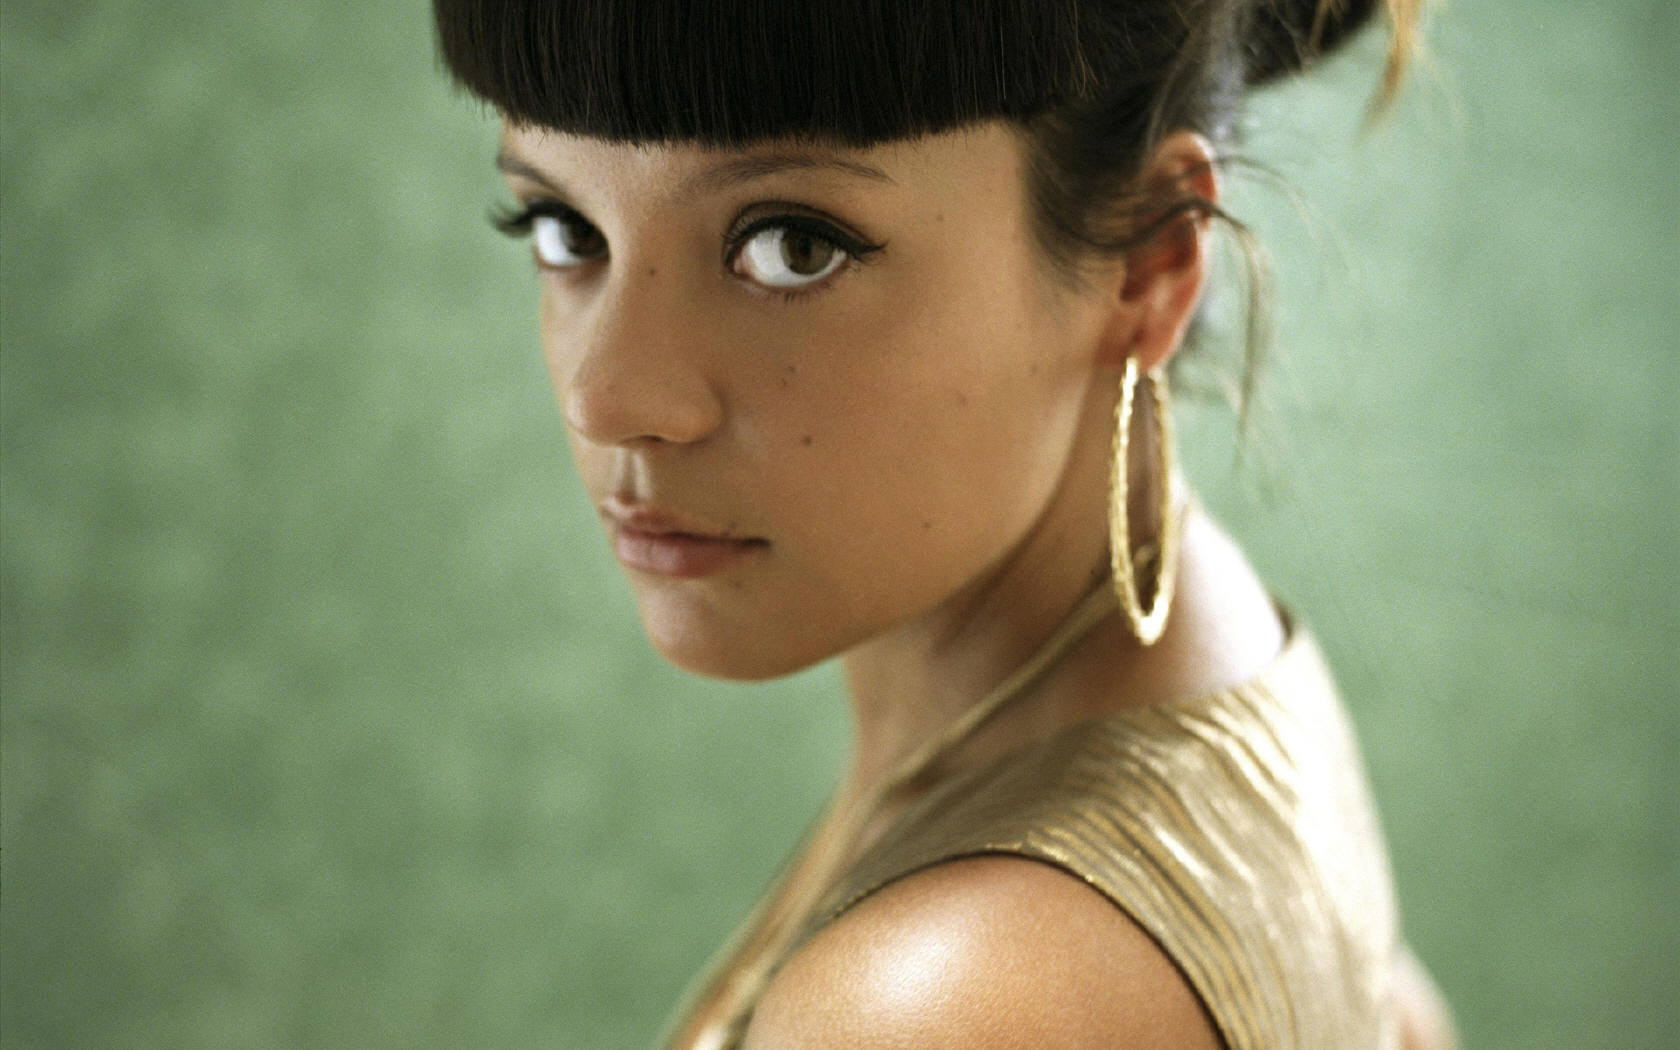 Lily Allen Gave Away the Opportunity to Become a Bitcoin Millionaire